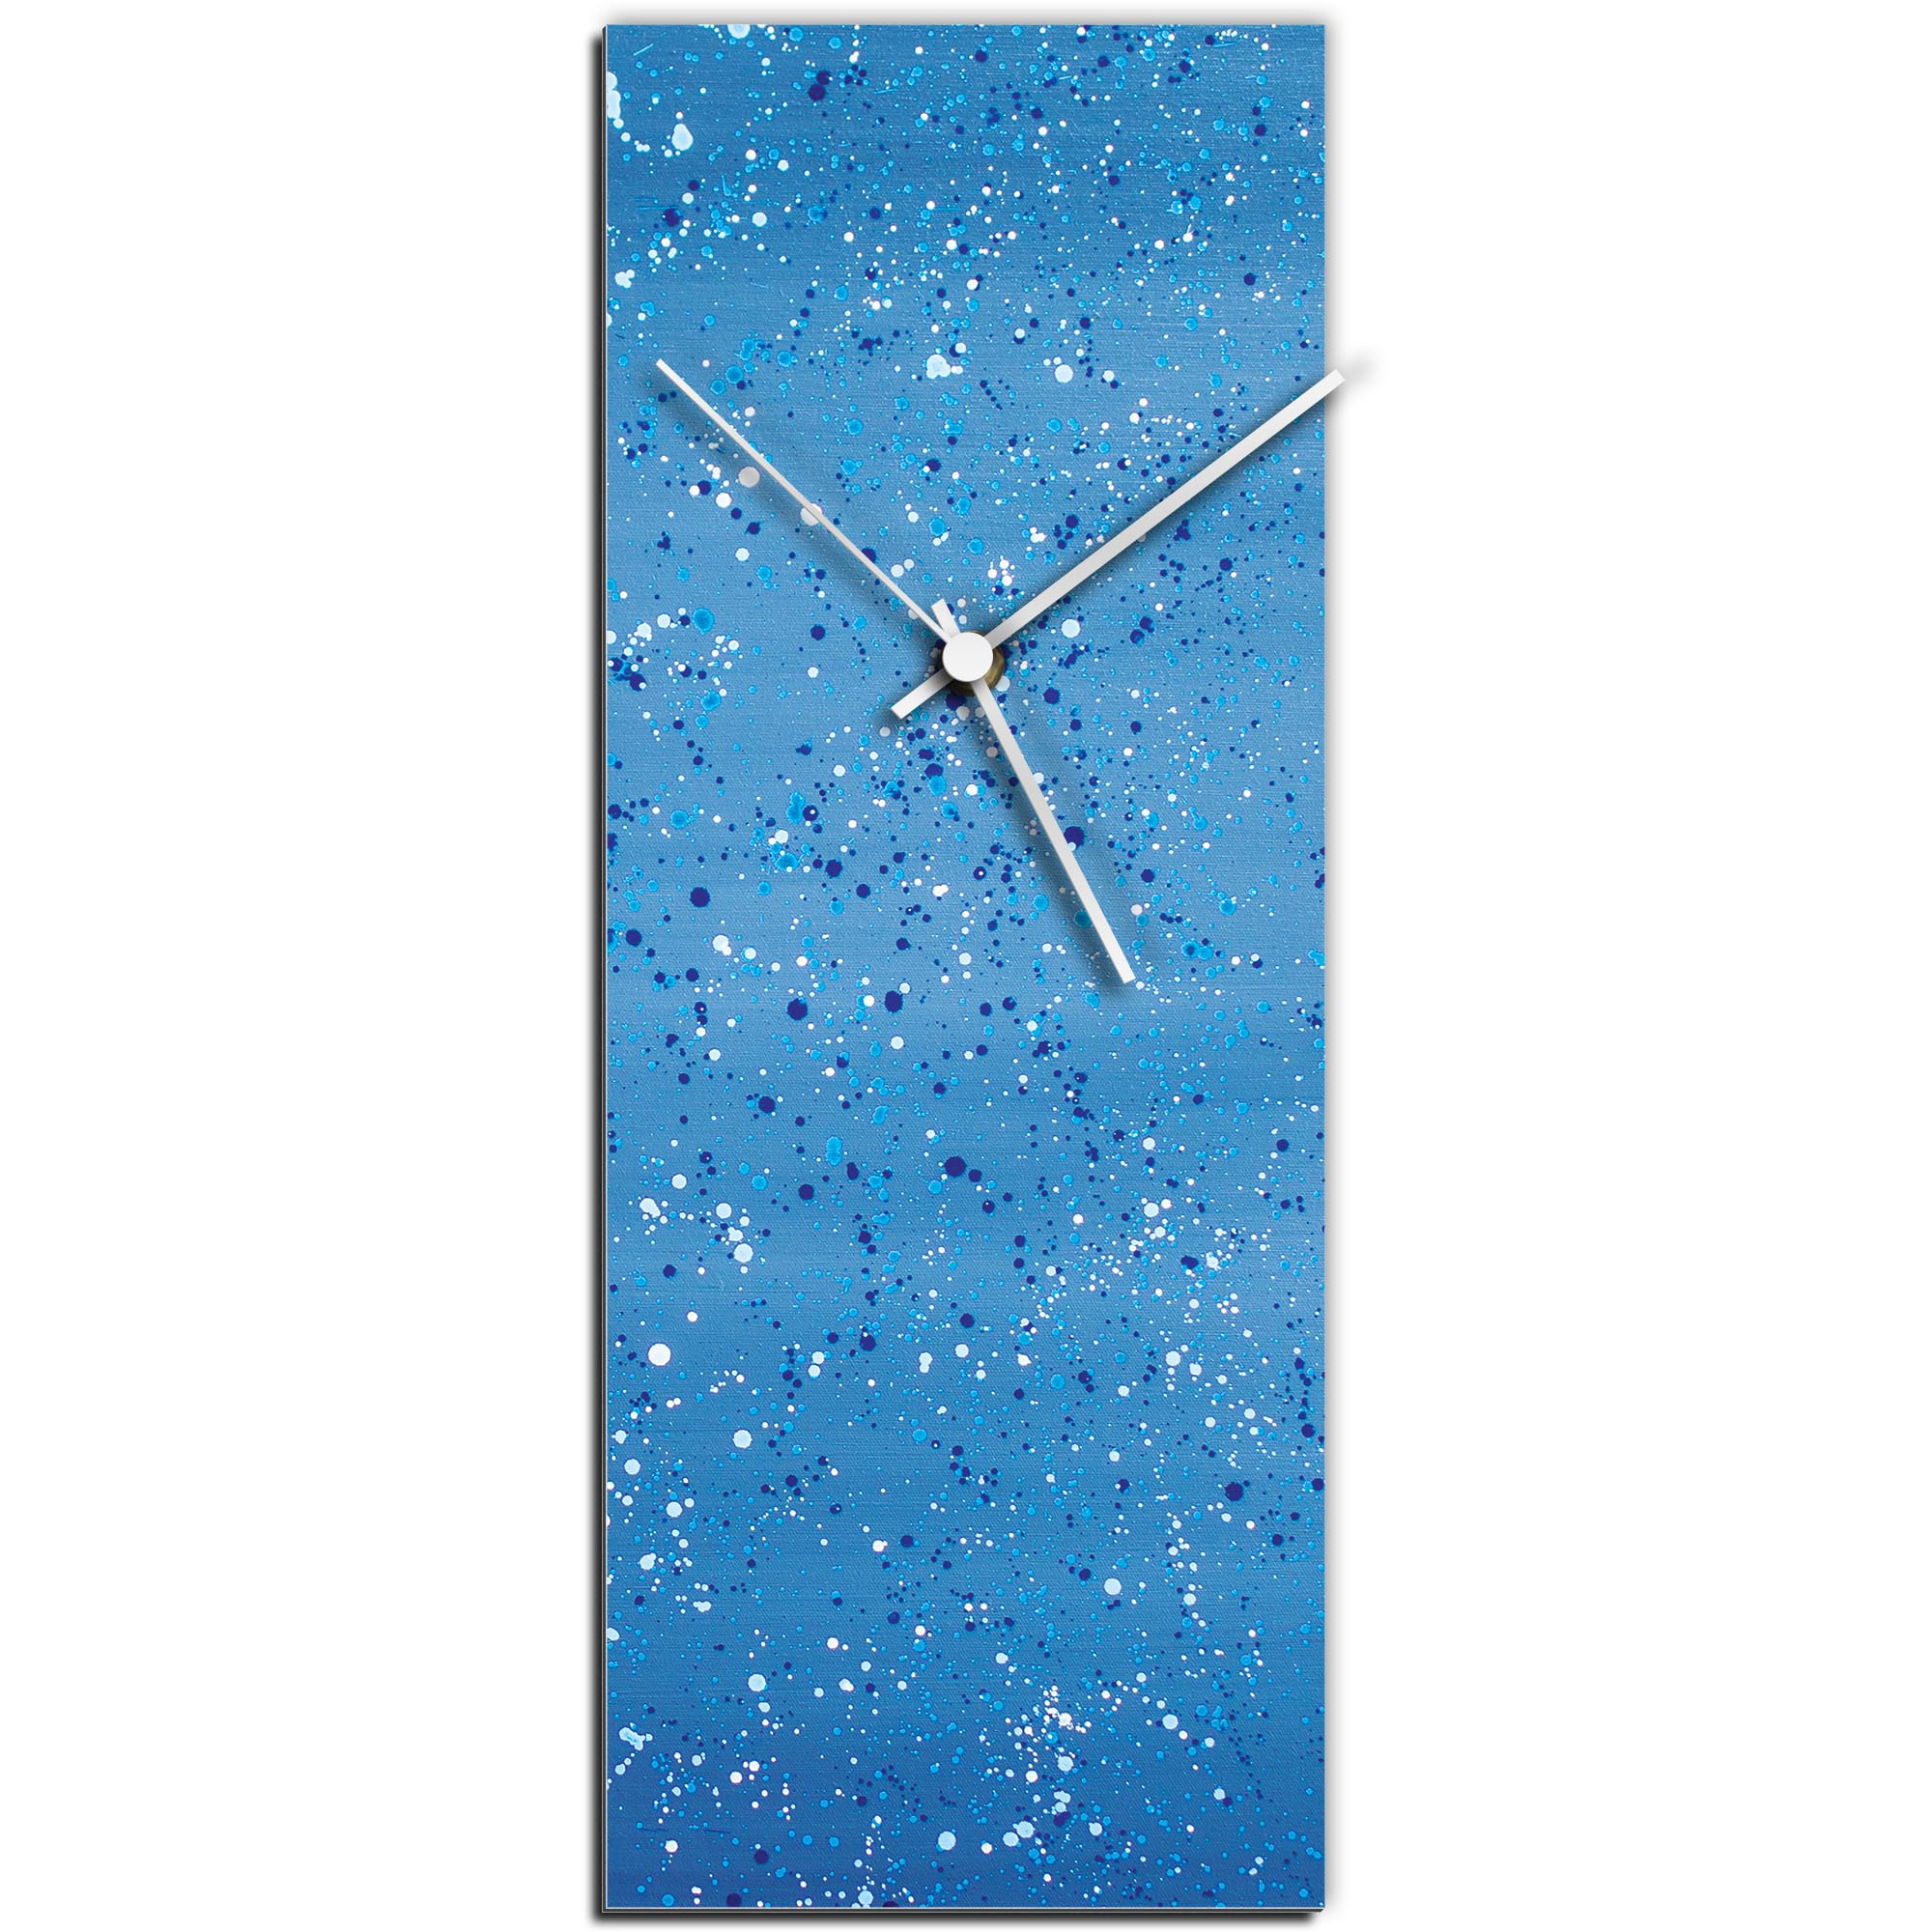 Mendo Vasilevski 'Blue Flecked Clock Large' 9in x 24in Modern Wall Clock on Aluminum Composite